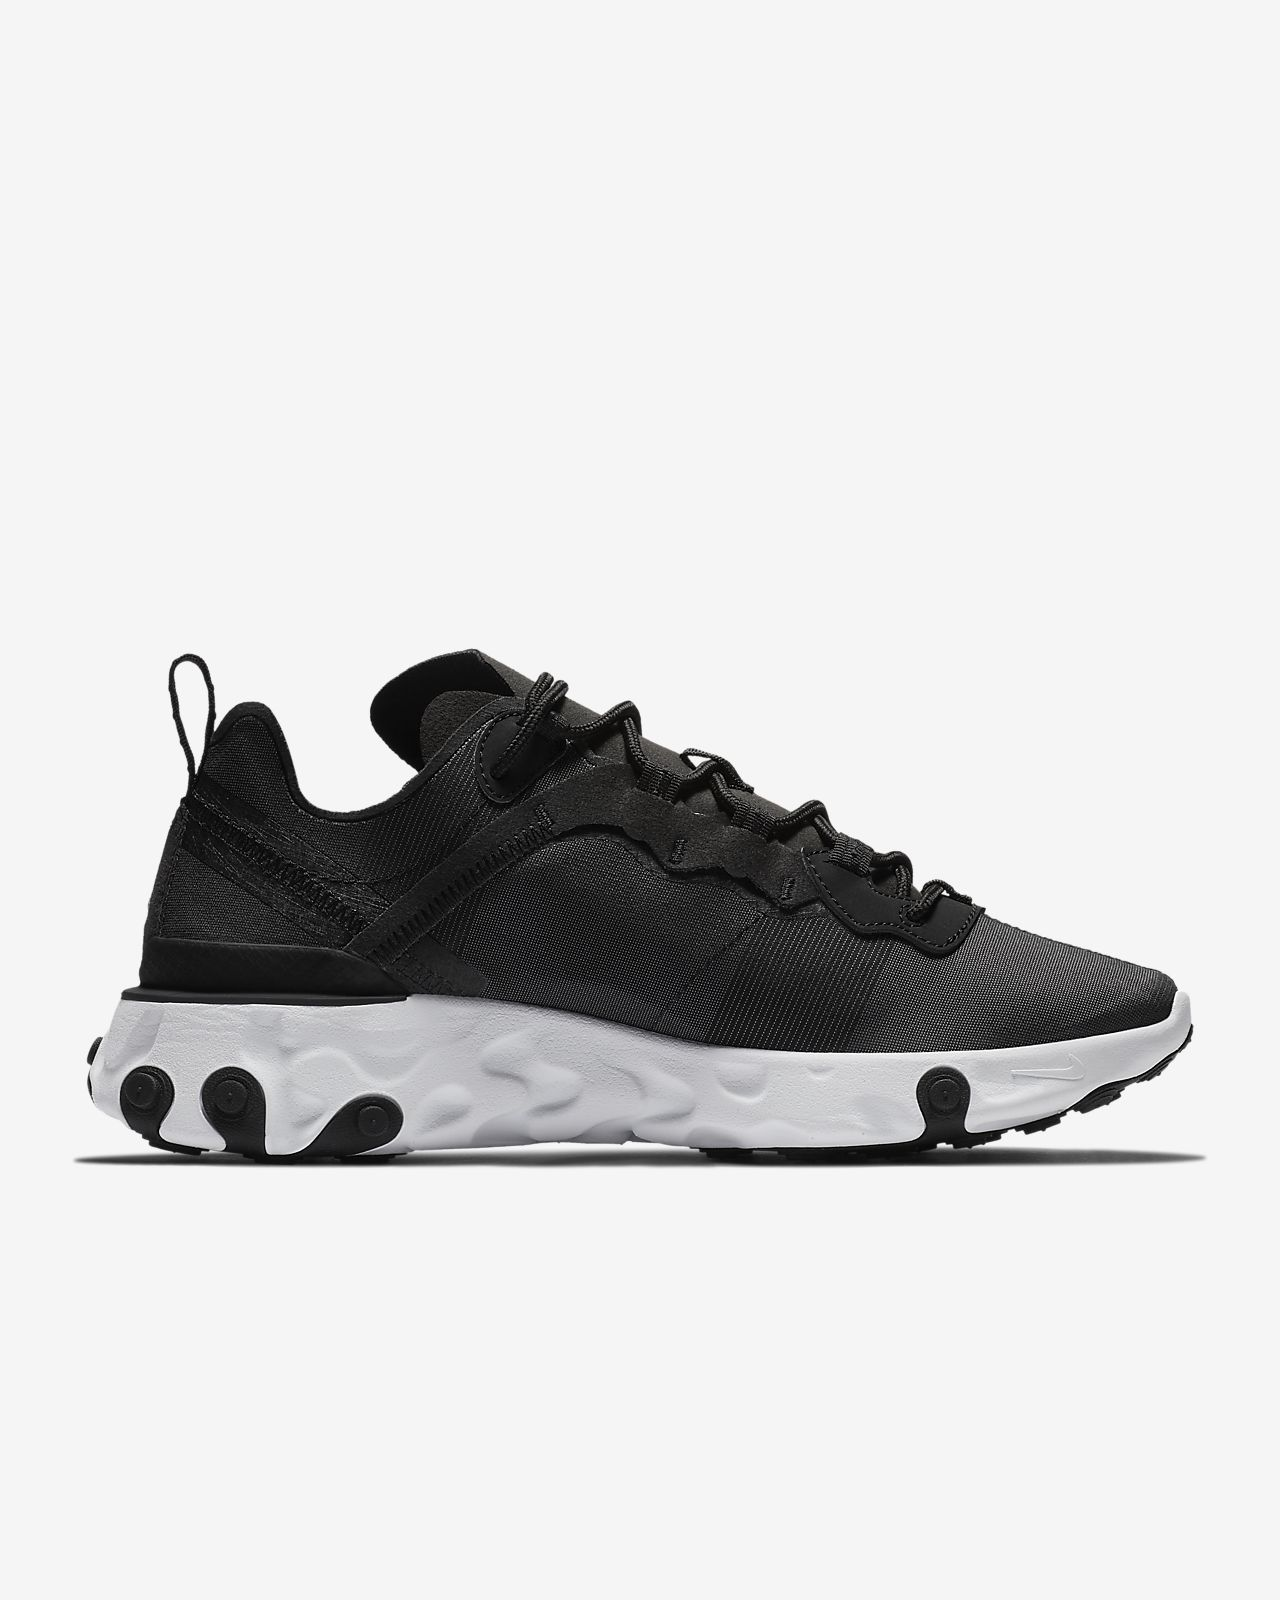 8d66003a68ed0 Nike React Element 55 Zapatillas - Mujer. Nike.com ES